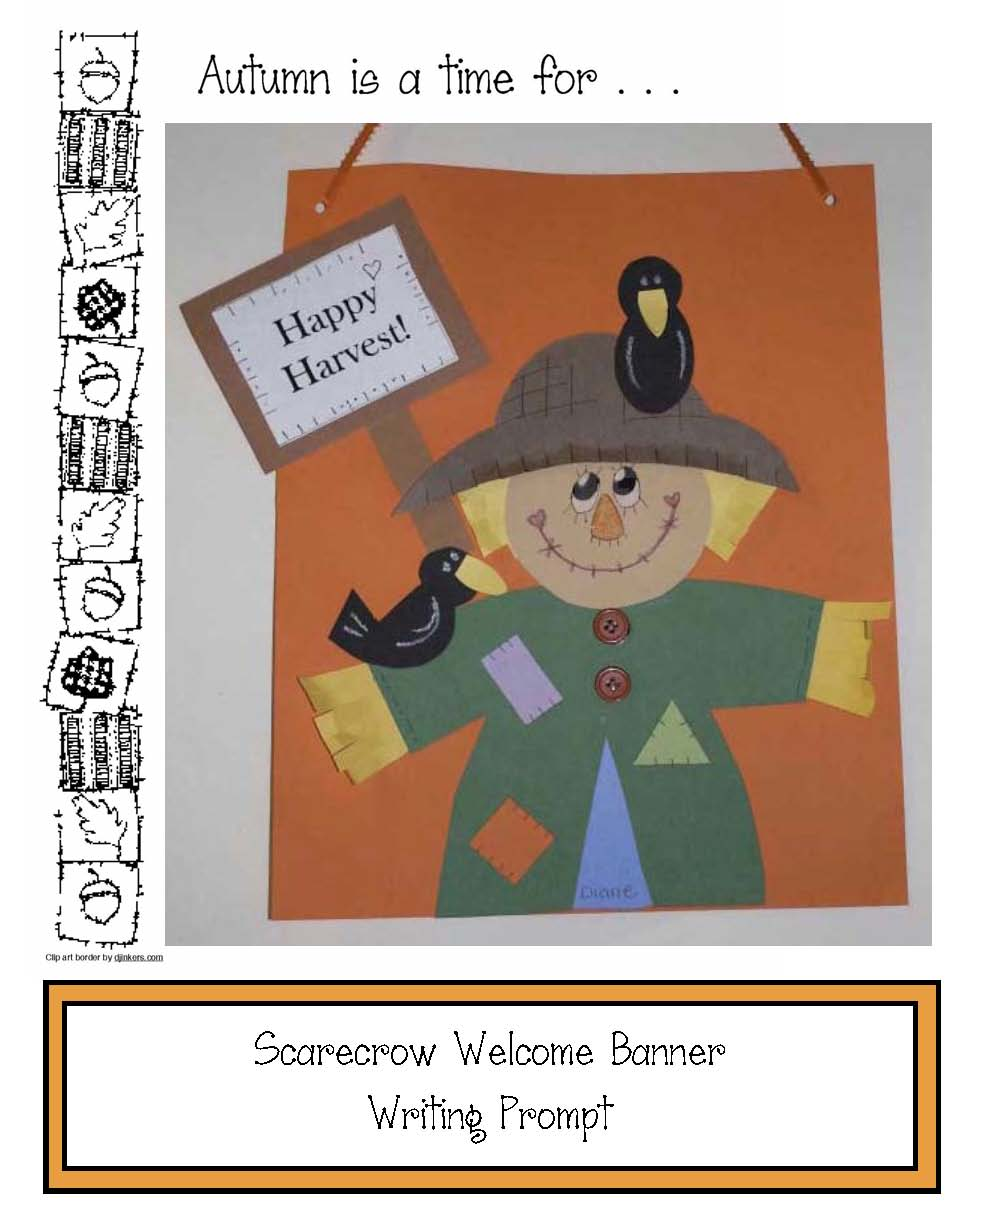 personal scarecrows, scarecrow crafts, scarecrow poems, scarecrow bulletin boards, scarecrow writing prompts, common core scarecrows, paper plate scarecrows